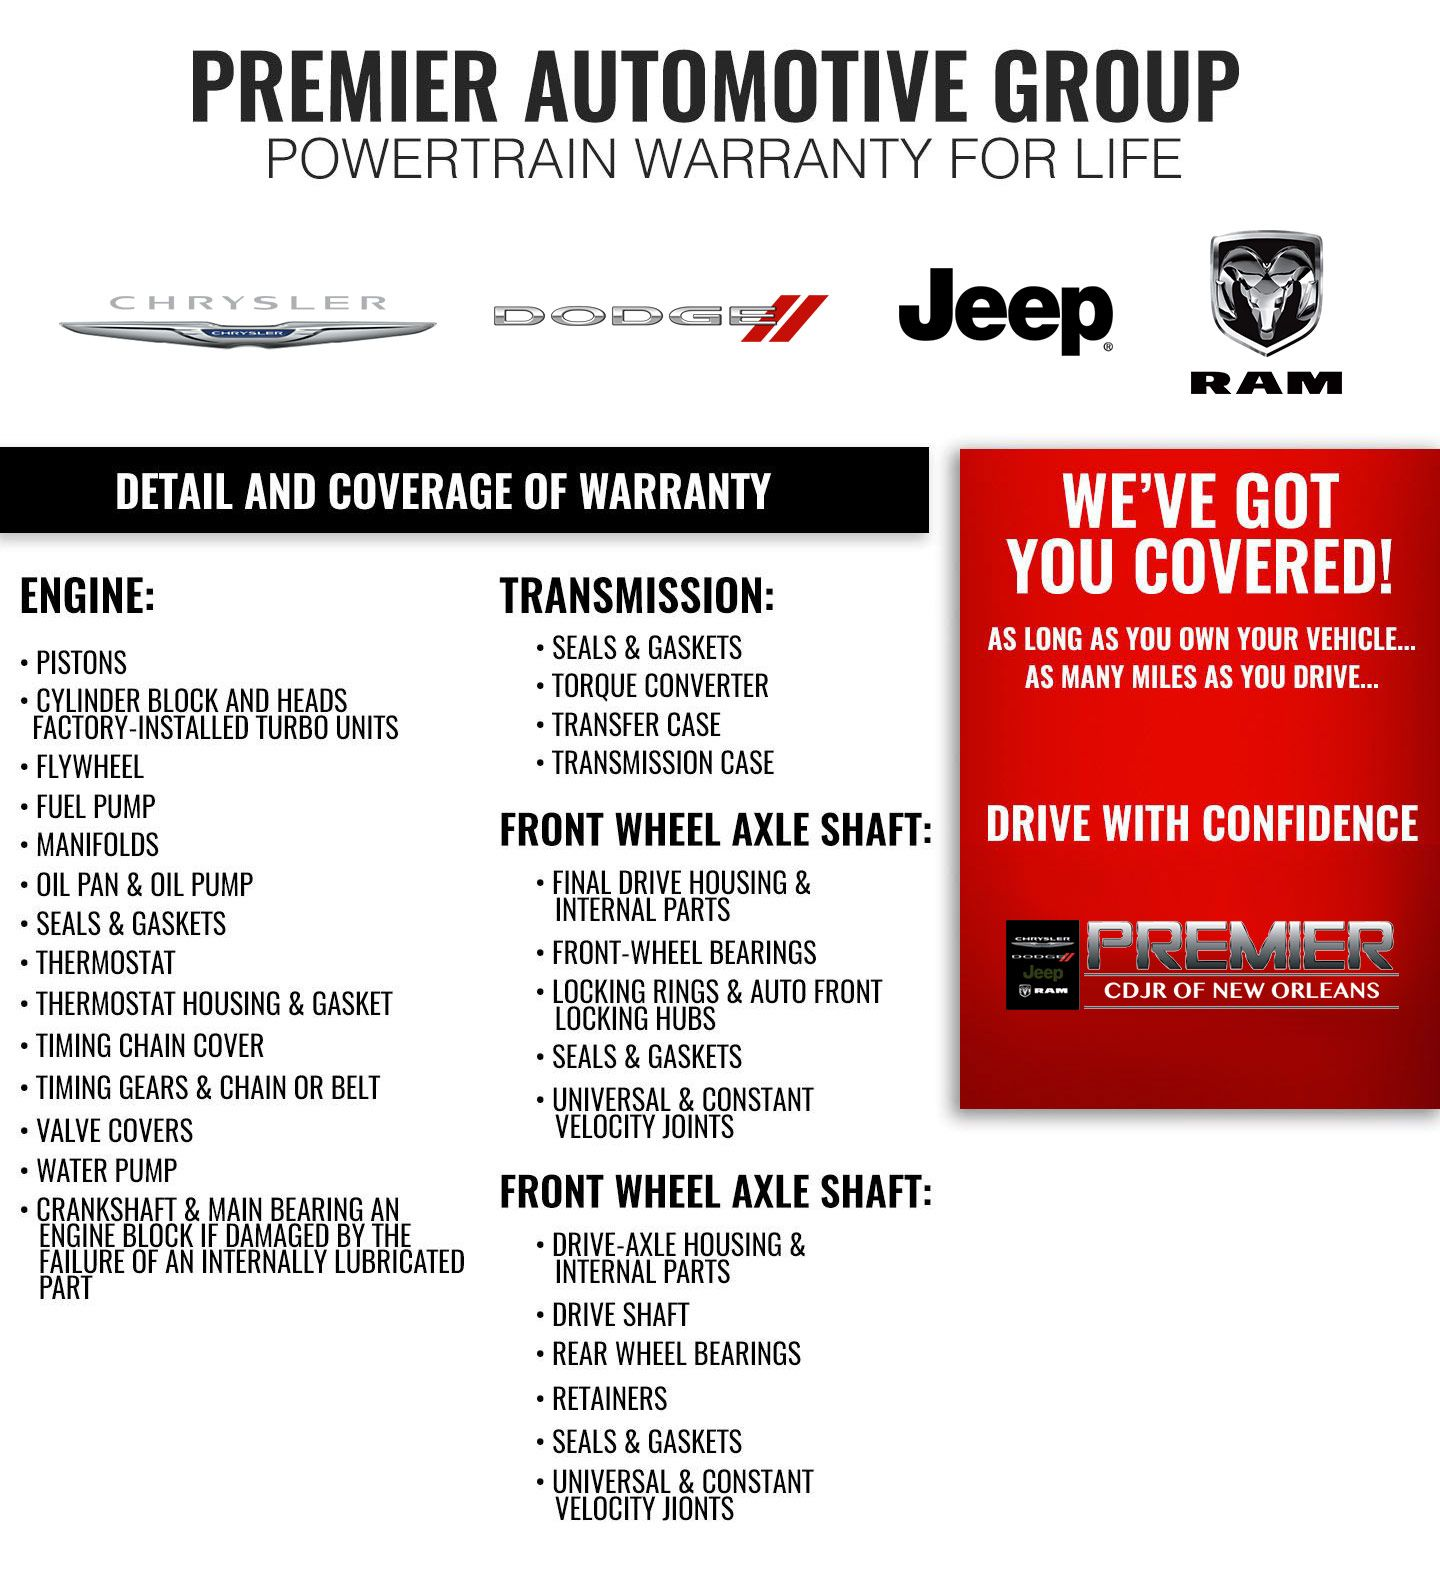 Premier CDJR, Powertrain Warranty for Life